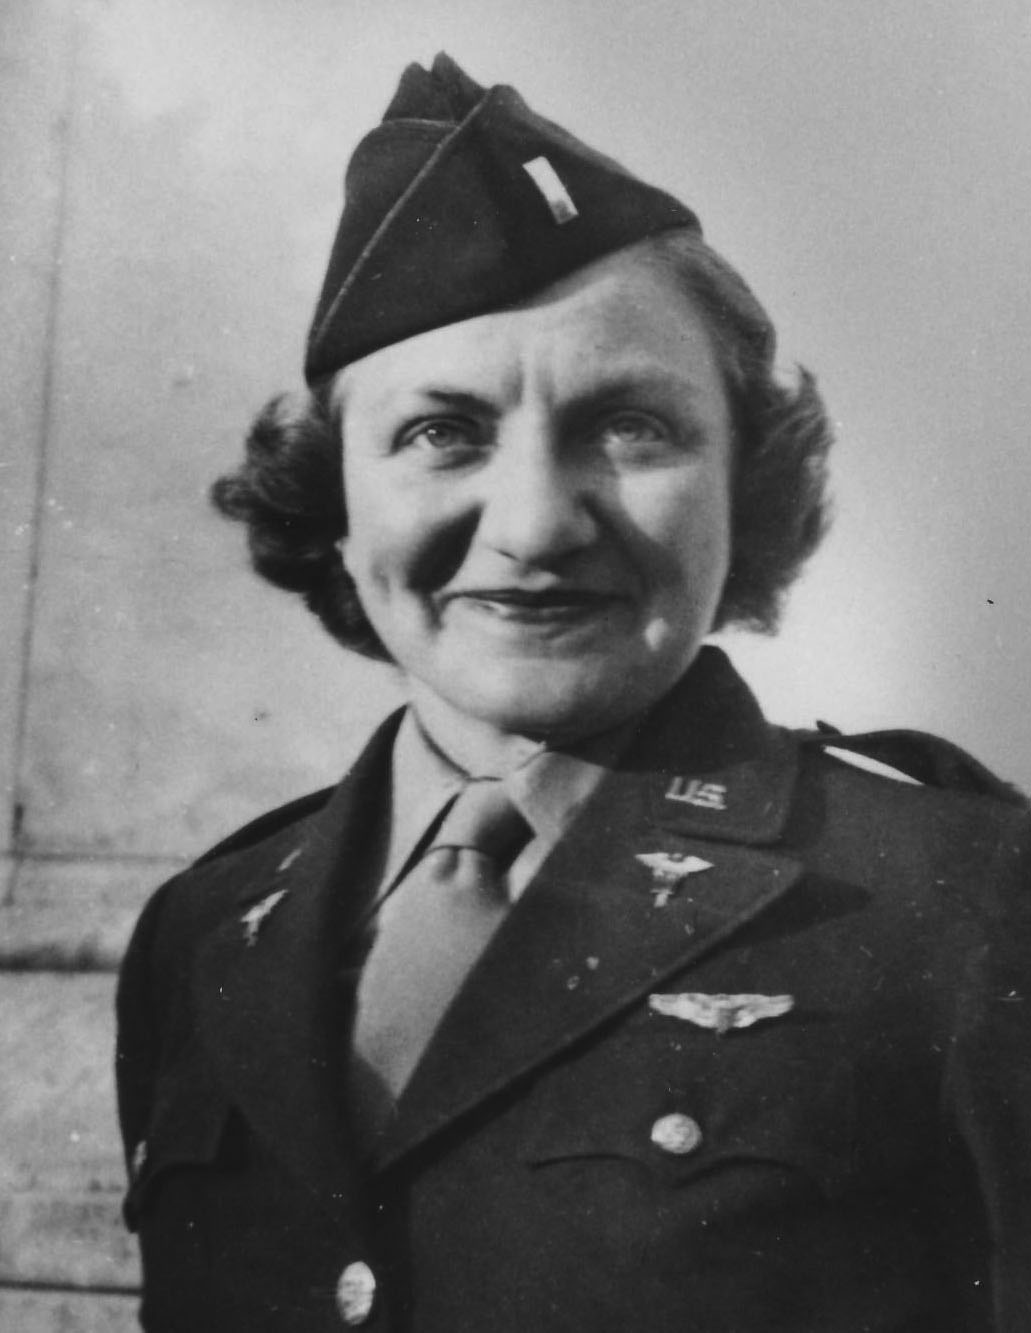 WWII Army Flight Nurse Aleda E. Lutz